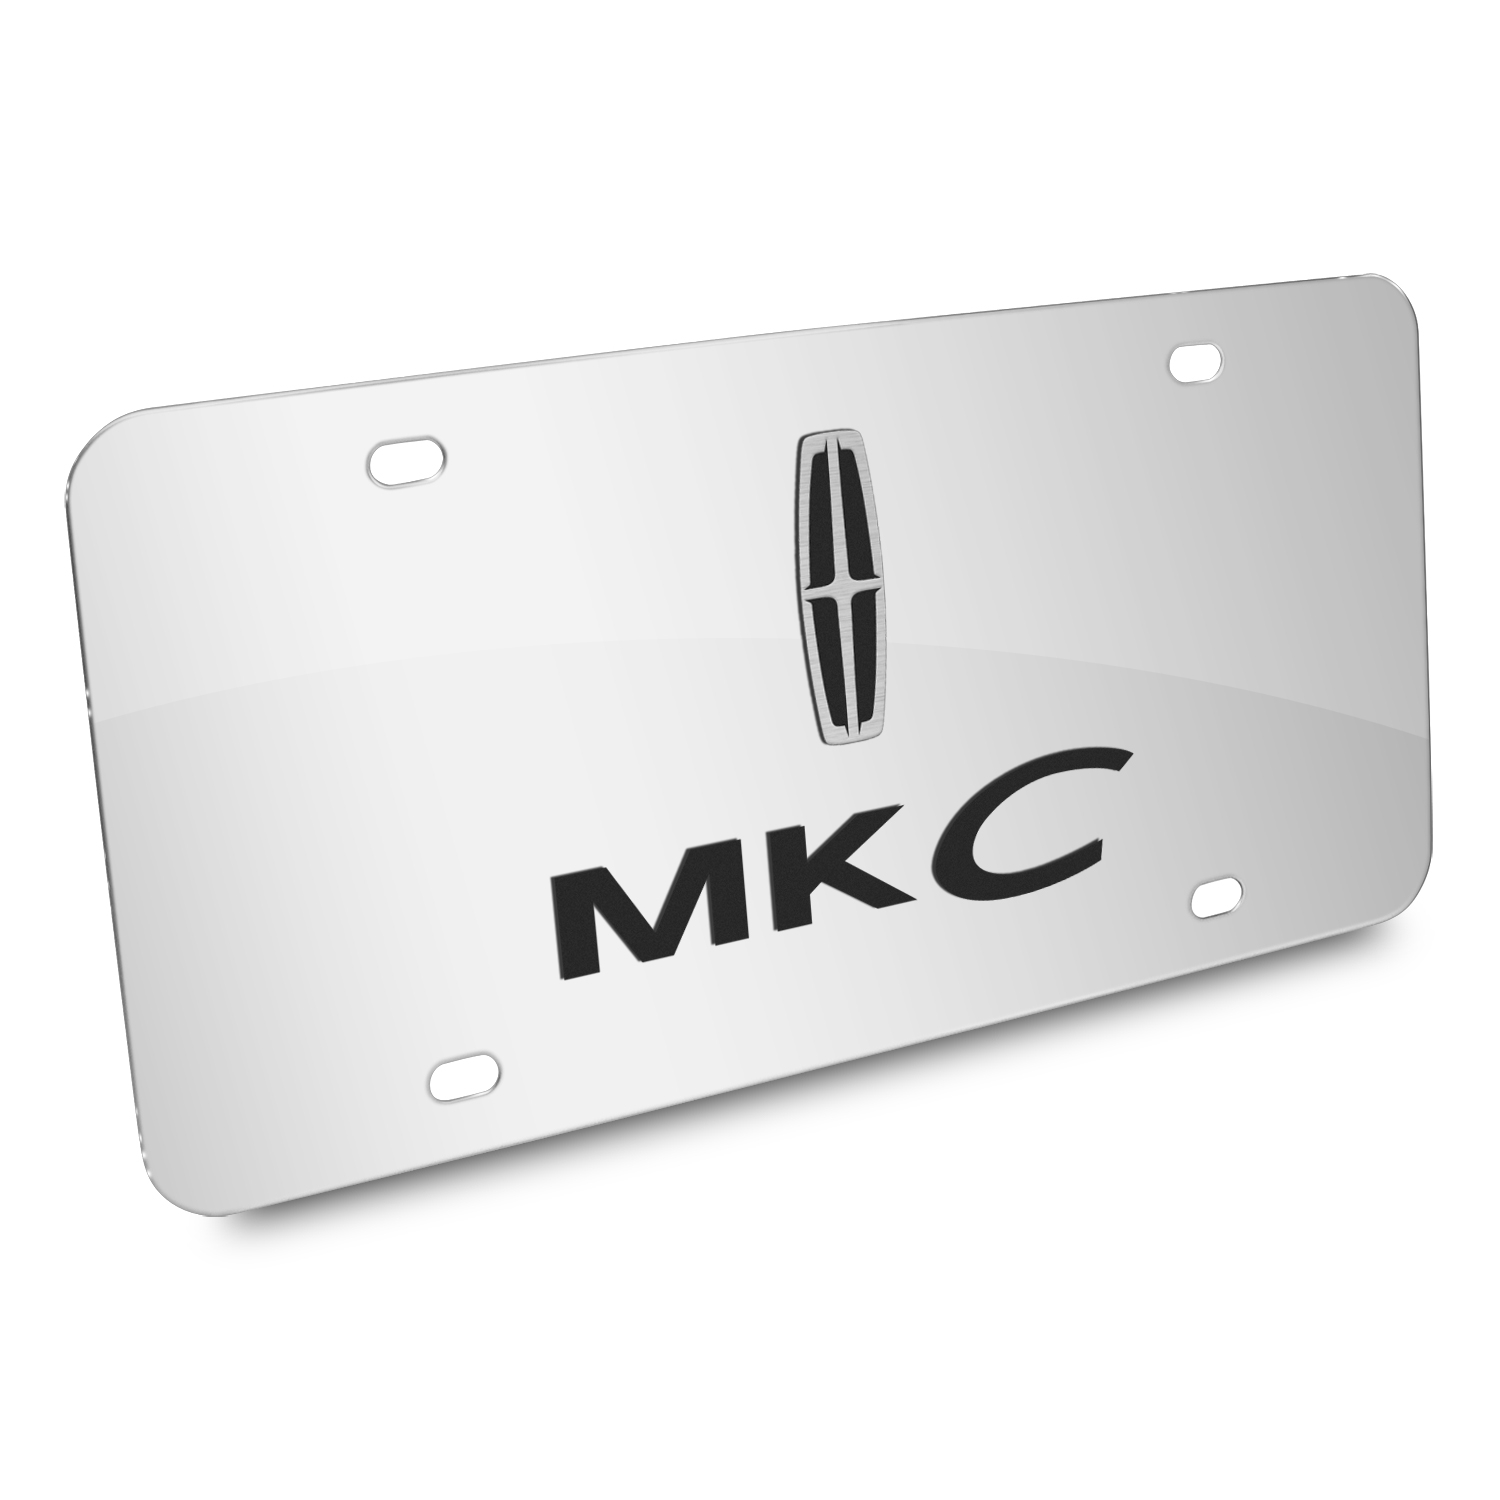 Lincoln MKC 3D Dual Logo Mirror Chrome Stainless Steel License Plate